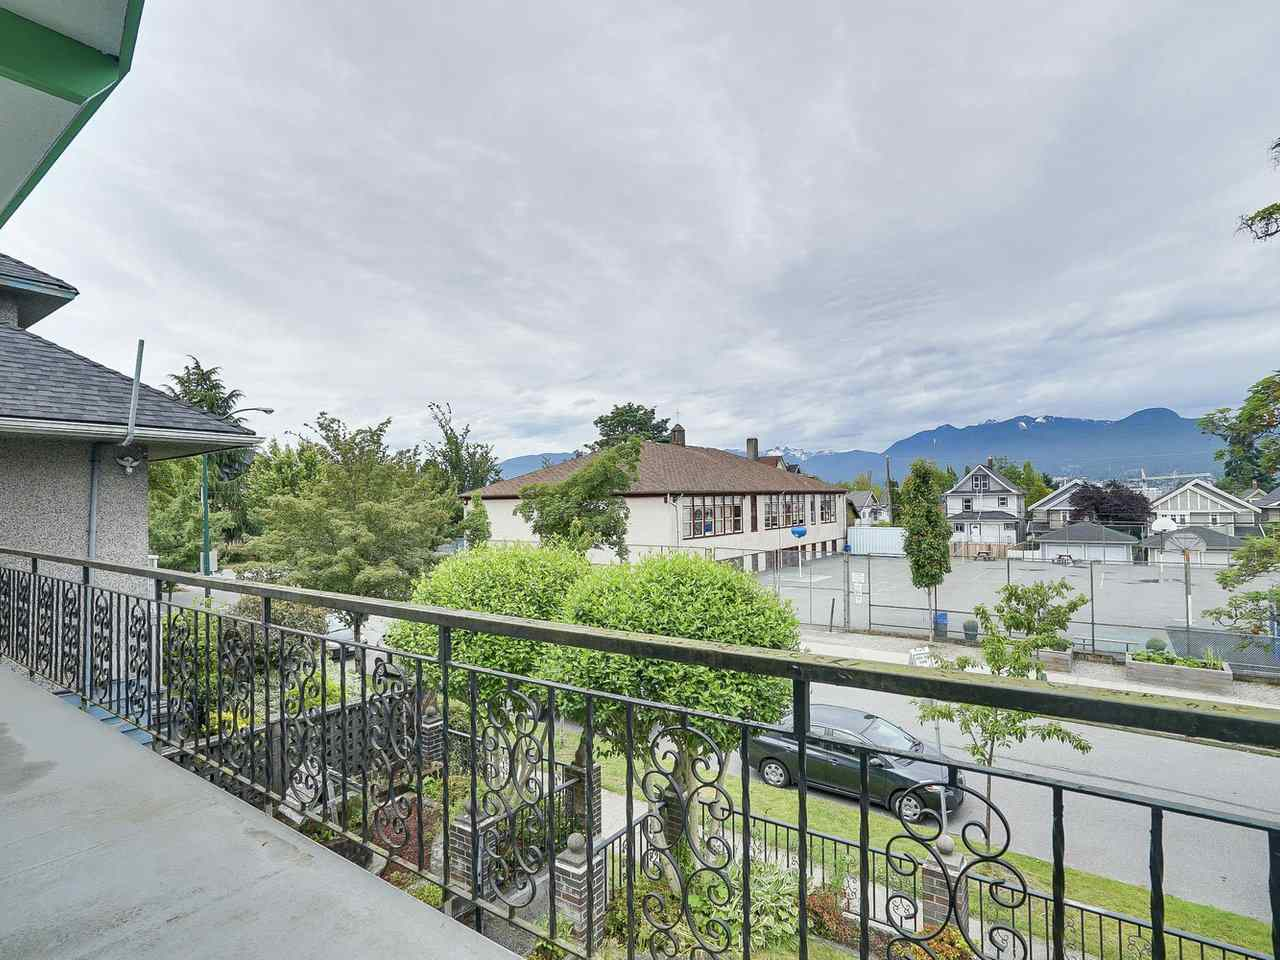 Main Photo: 1928 VENABLES Street in Vancouver: Grandview VE House for sale (Vancouver East)  : MLS(r) # R2180121